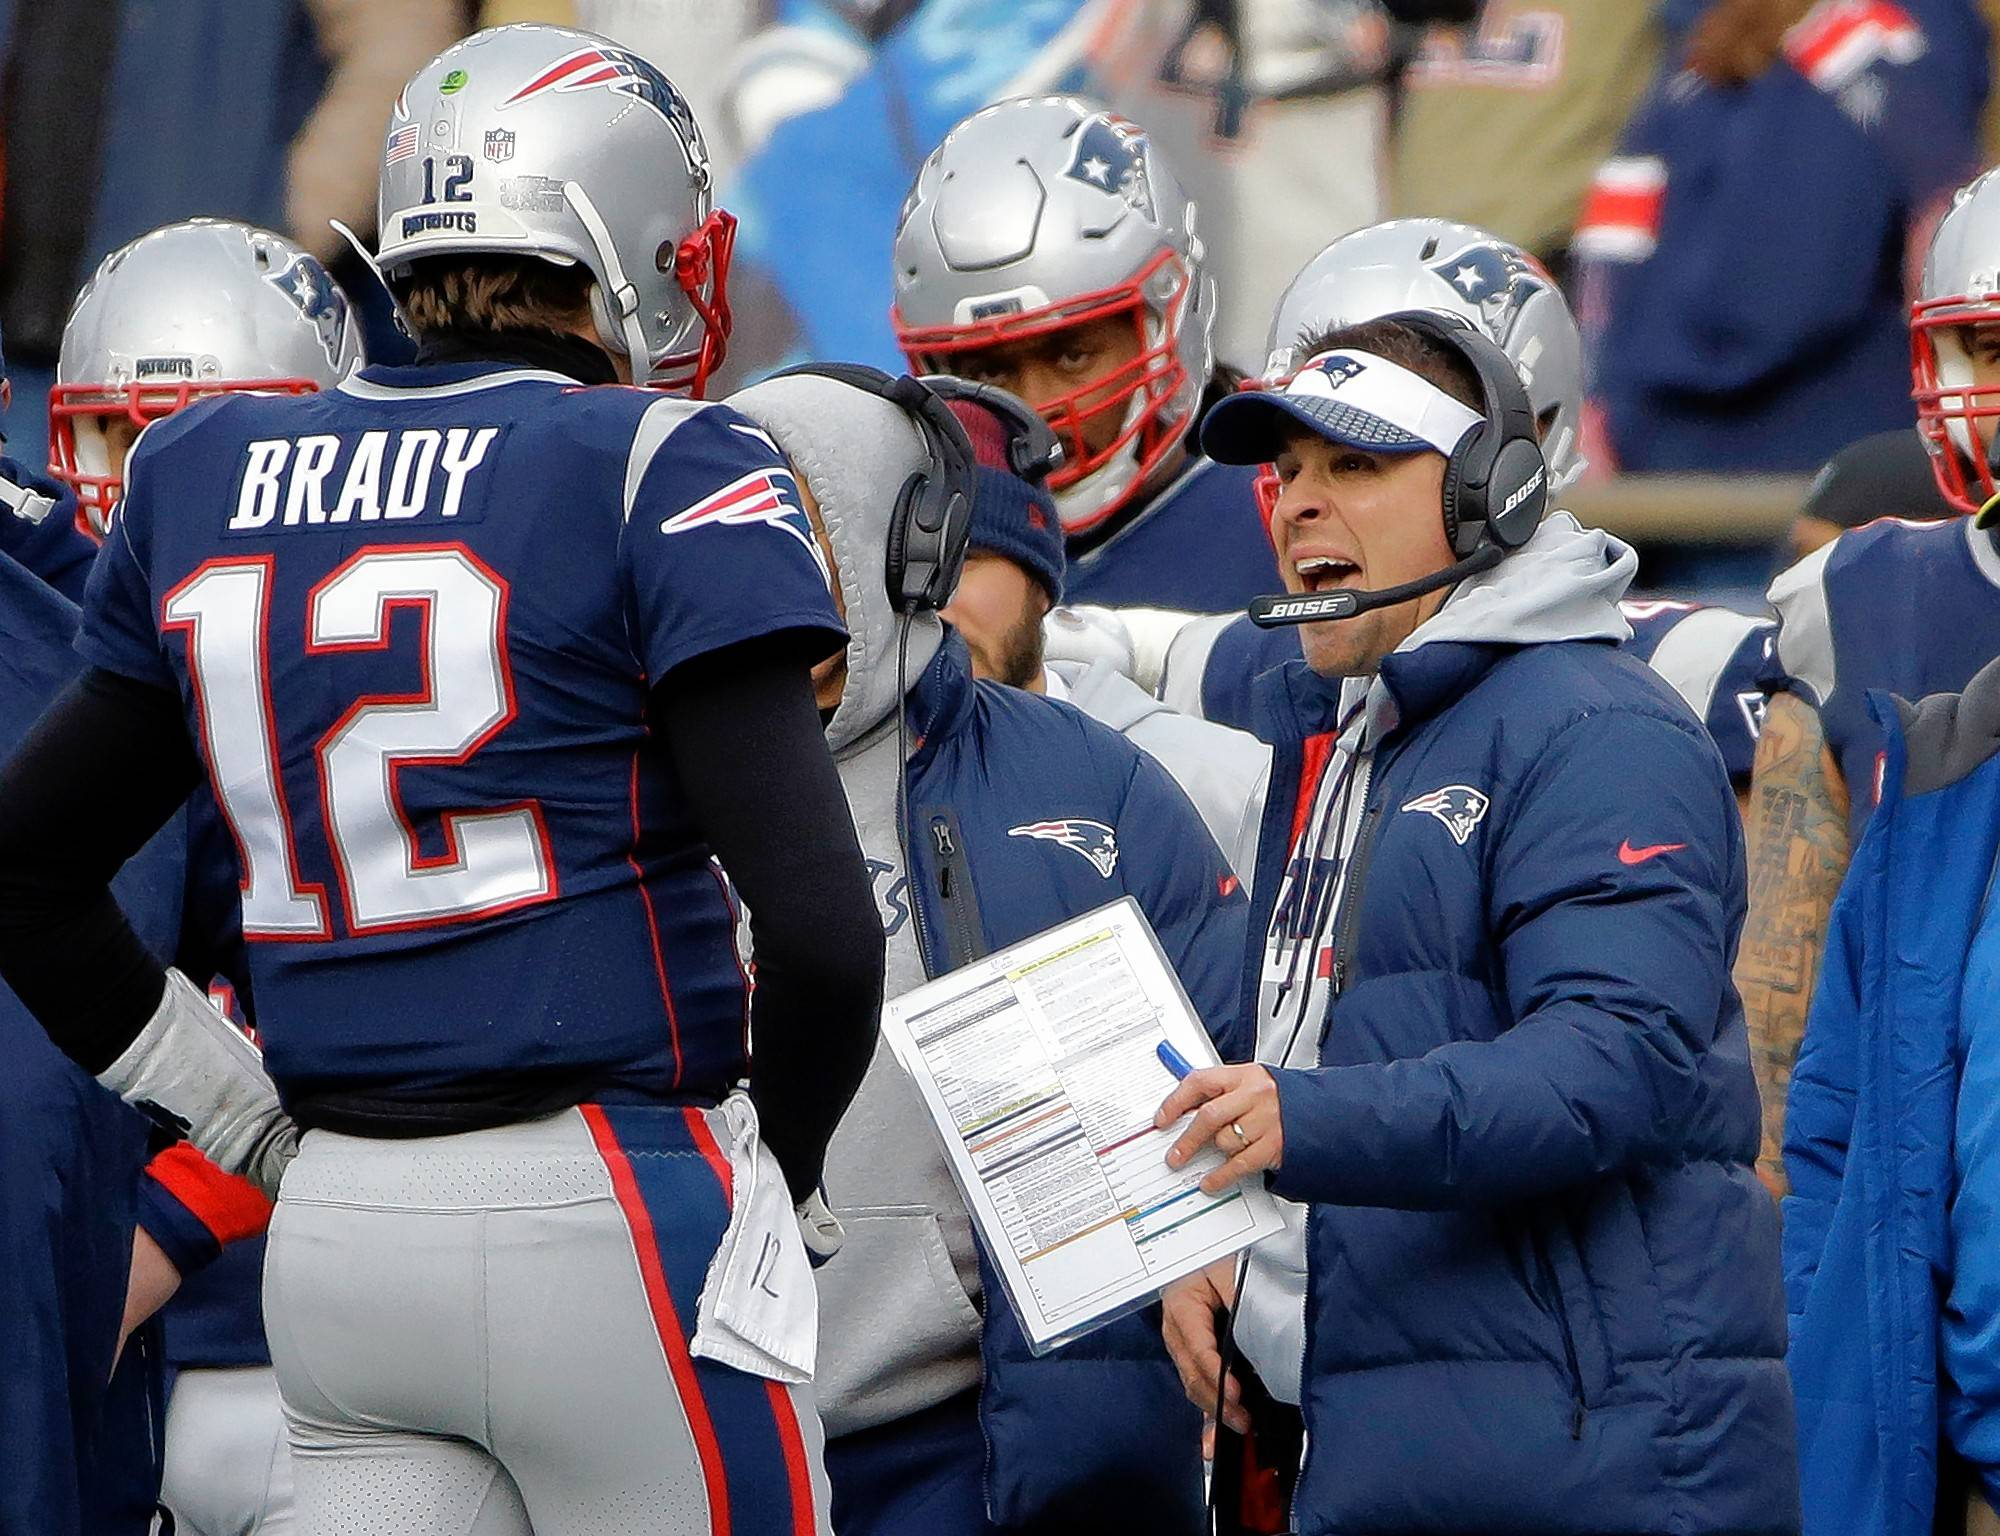 New England Patriots offensive coordinator Josh McDaniels, right, talks with quarterback Tom Brady (12) during a timeout in the first half of an NFL football game against the Buffalo Bills, Sunday, Dec. 24, 2017, in Foxborough, Mass.